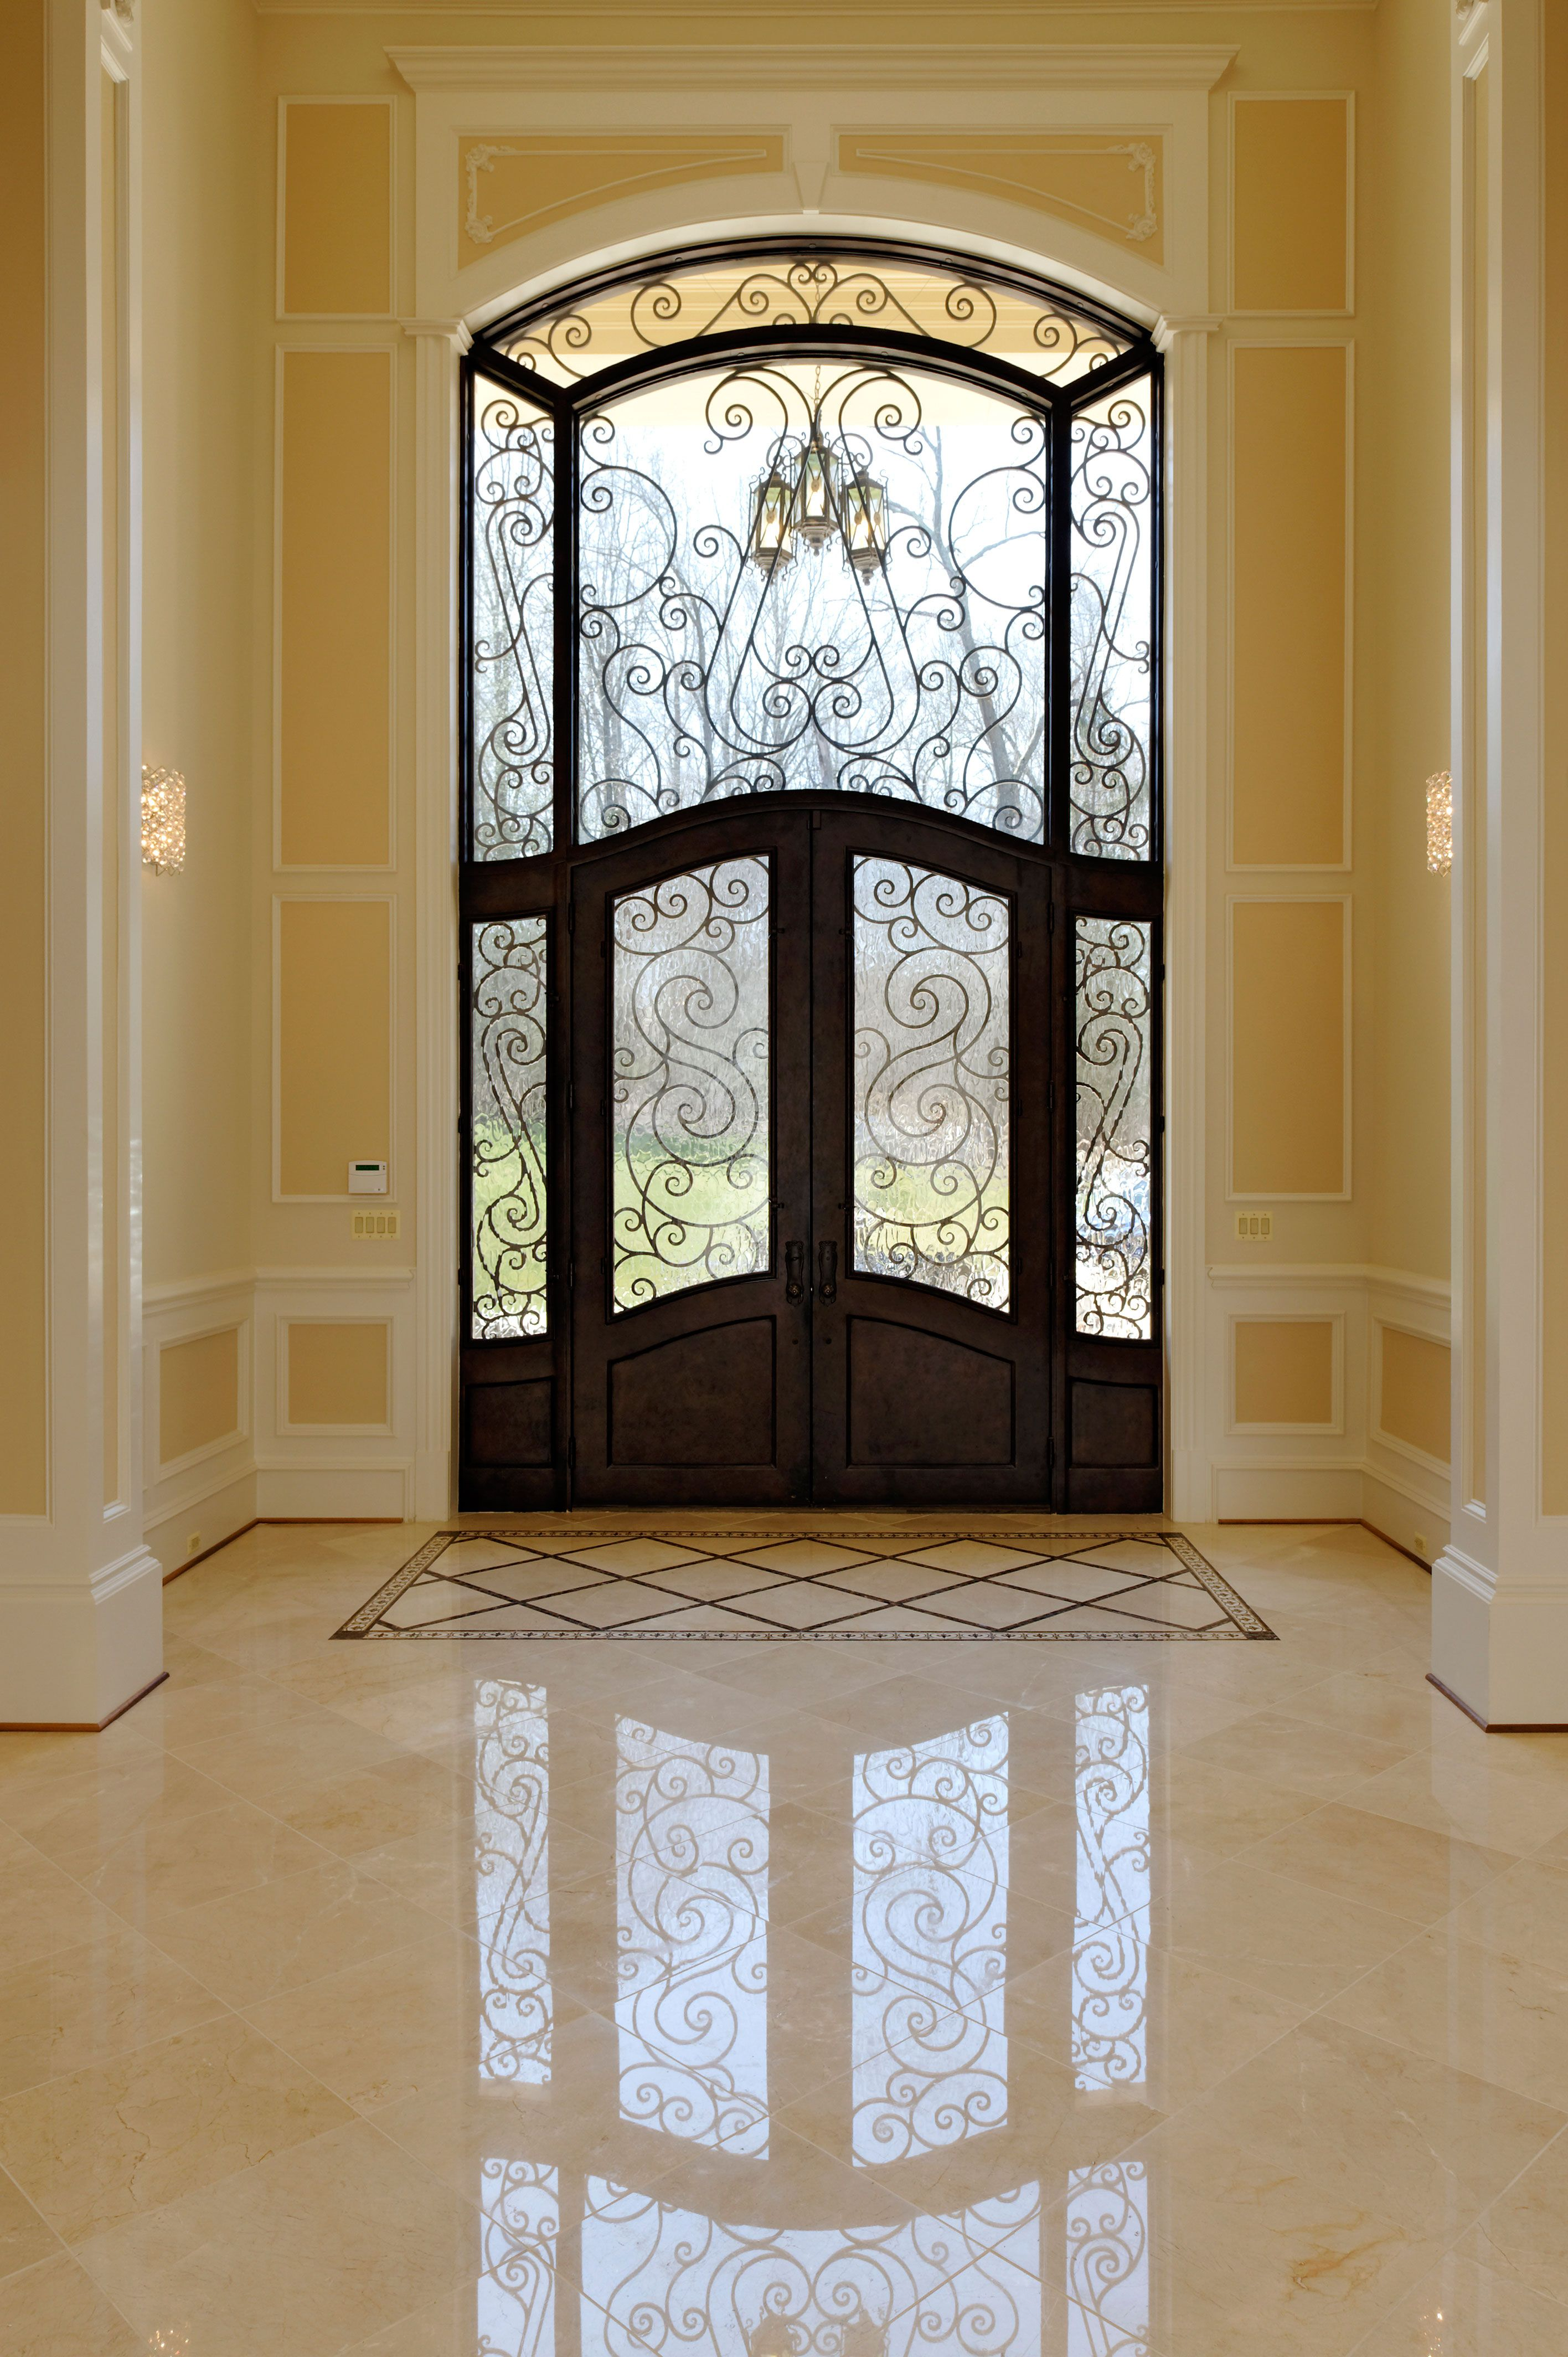 Grand entryway grand entryways pinterest grand for Grand front doors